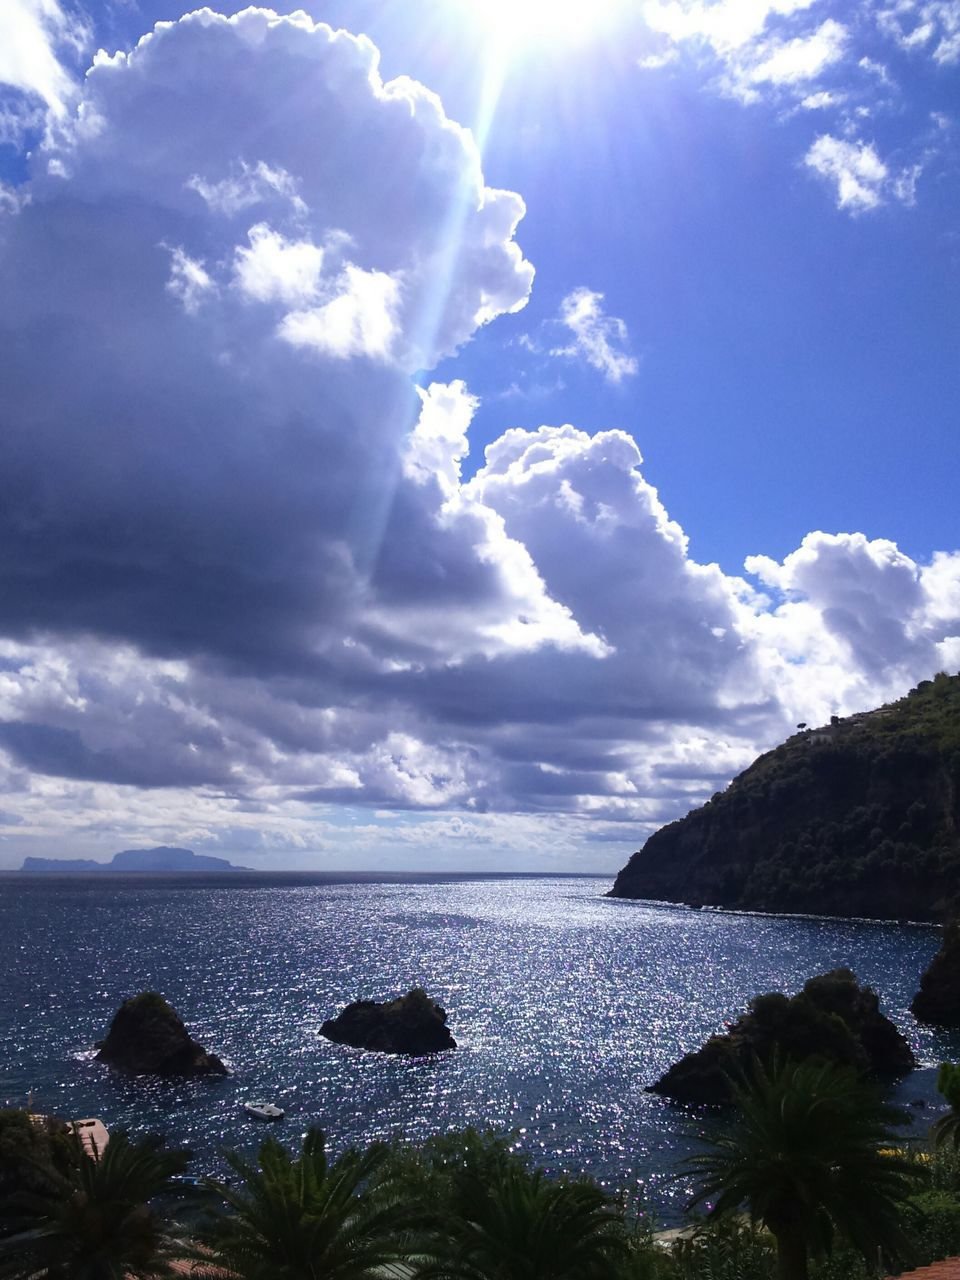 sea, sky, nature, cloud - sky, beauty in nature, tranquility, horizon over water, water, scenics, no people, tranquil scene, day, outdoors, sunlight, blue, beach